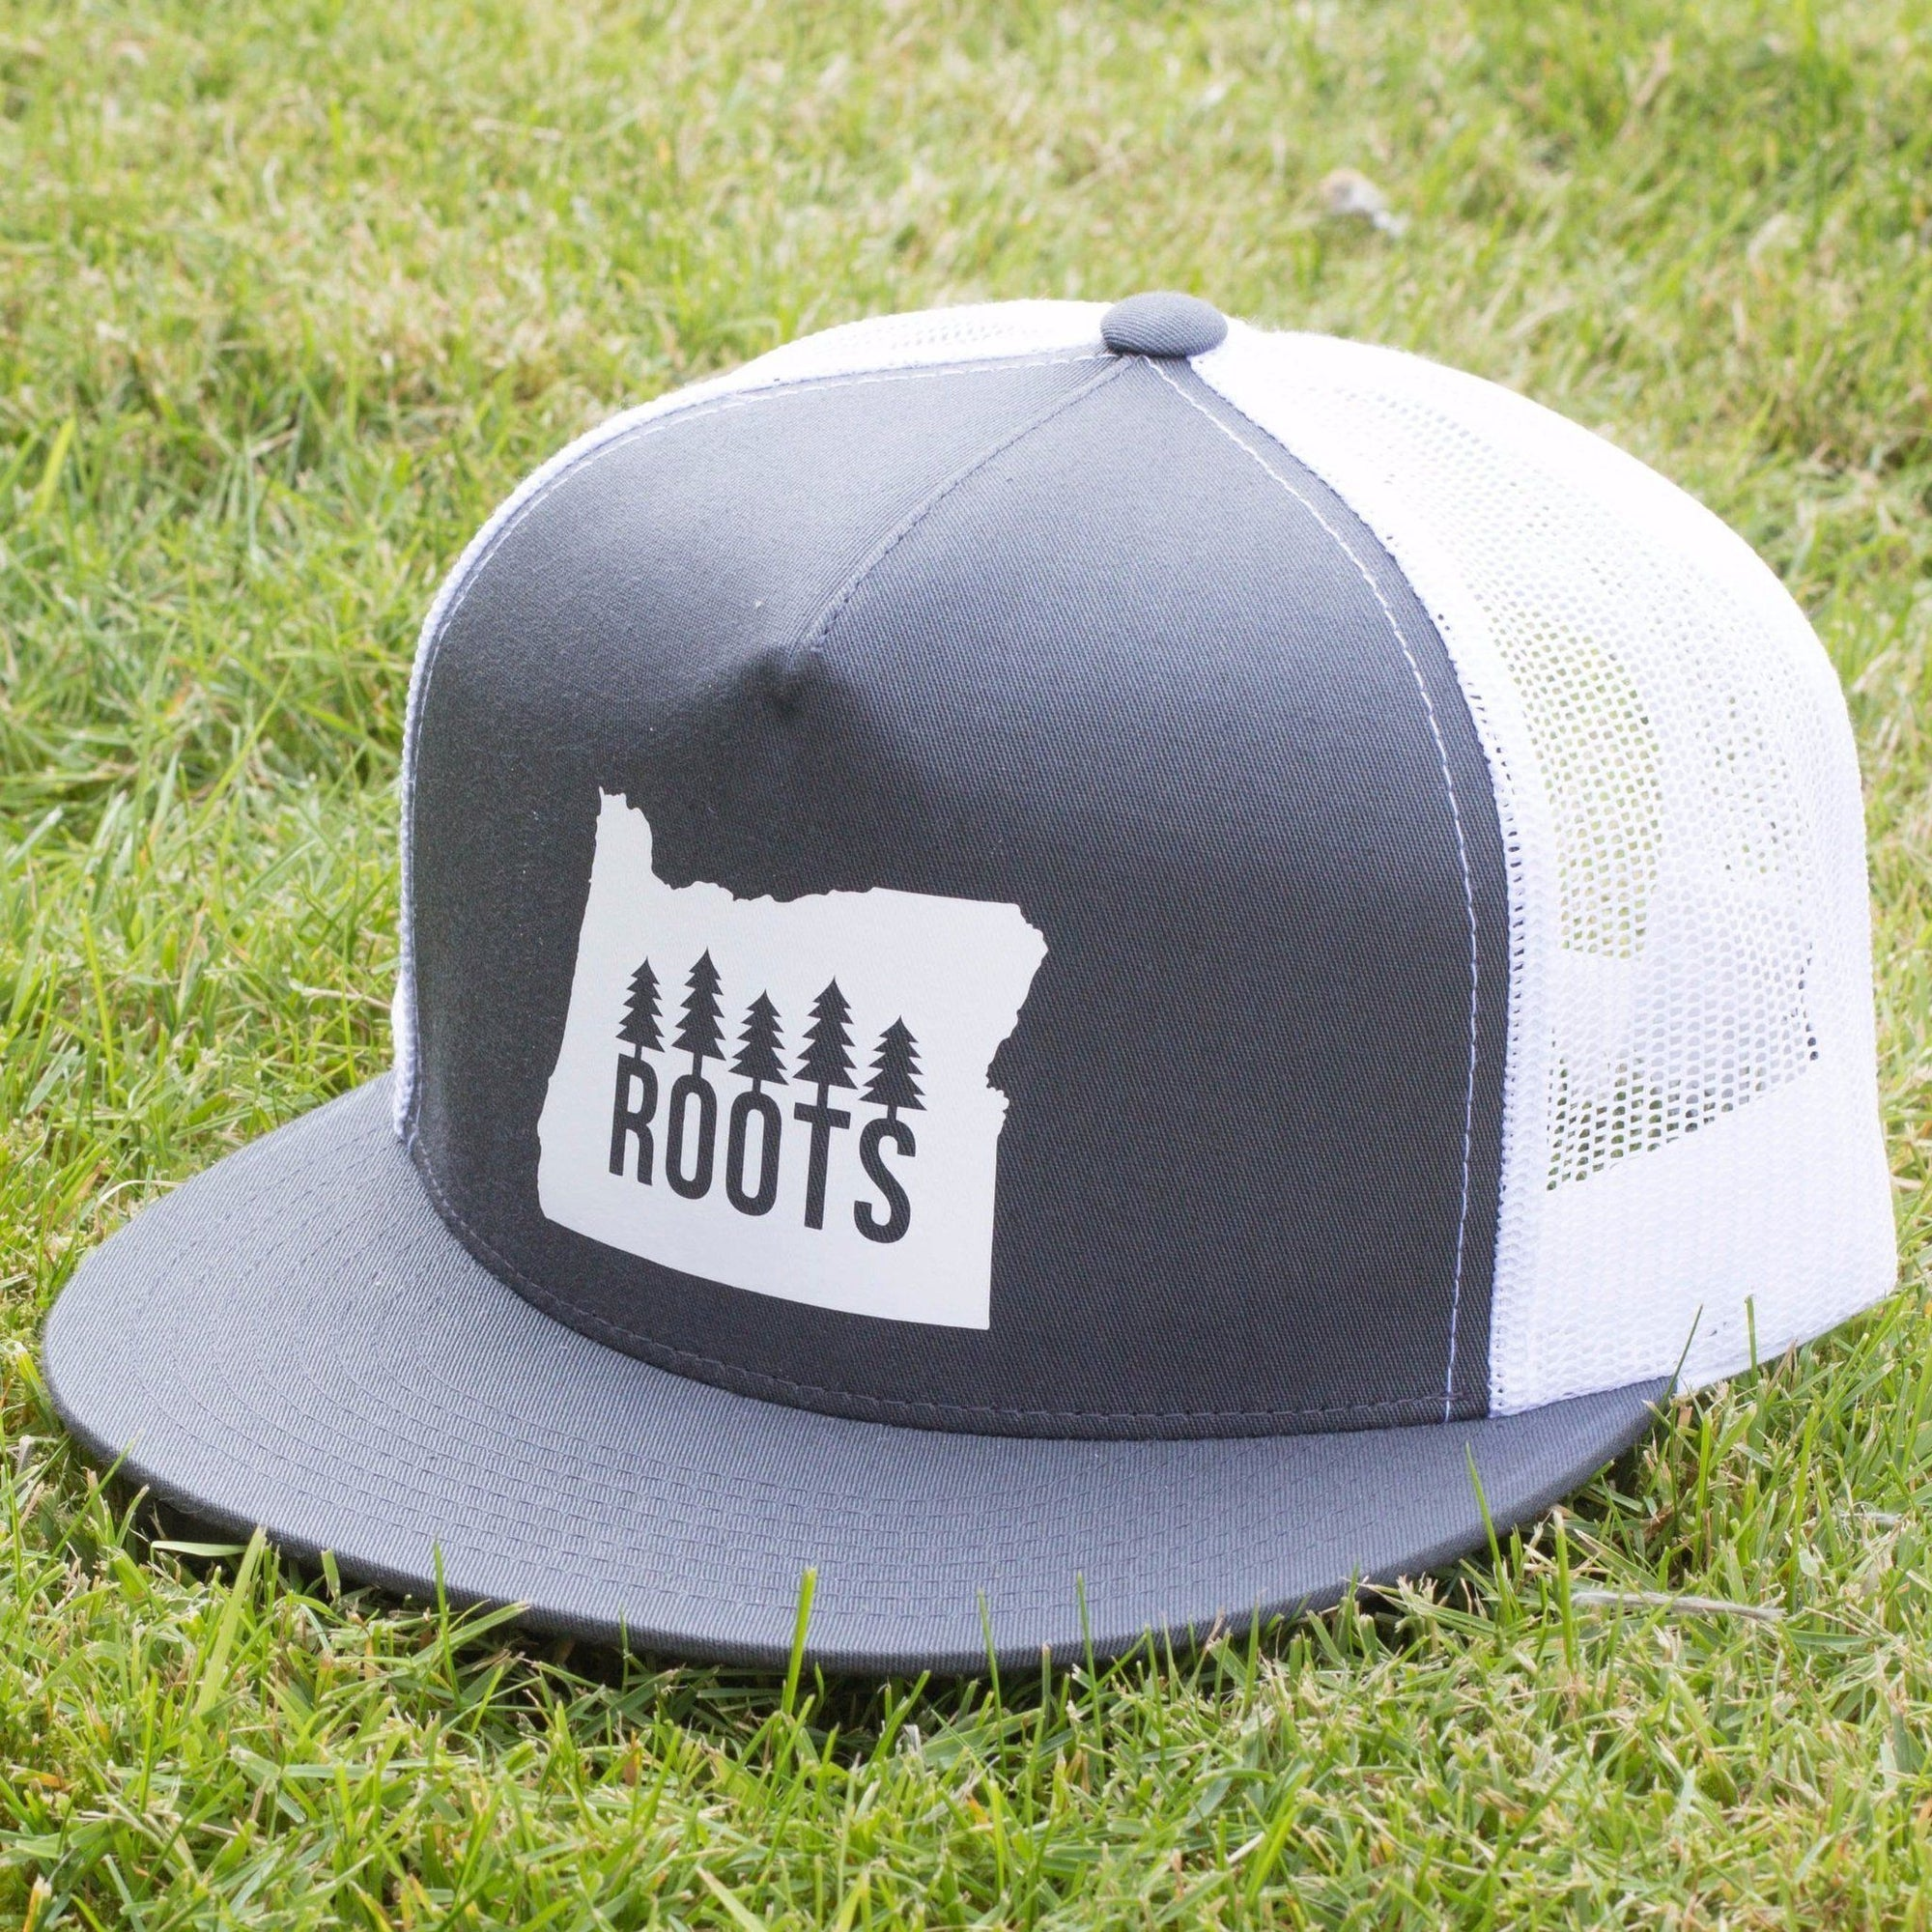 SNW - Oregon Roots Snapback Flat Bill Hat - Knock Your Socks Off